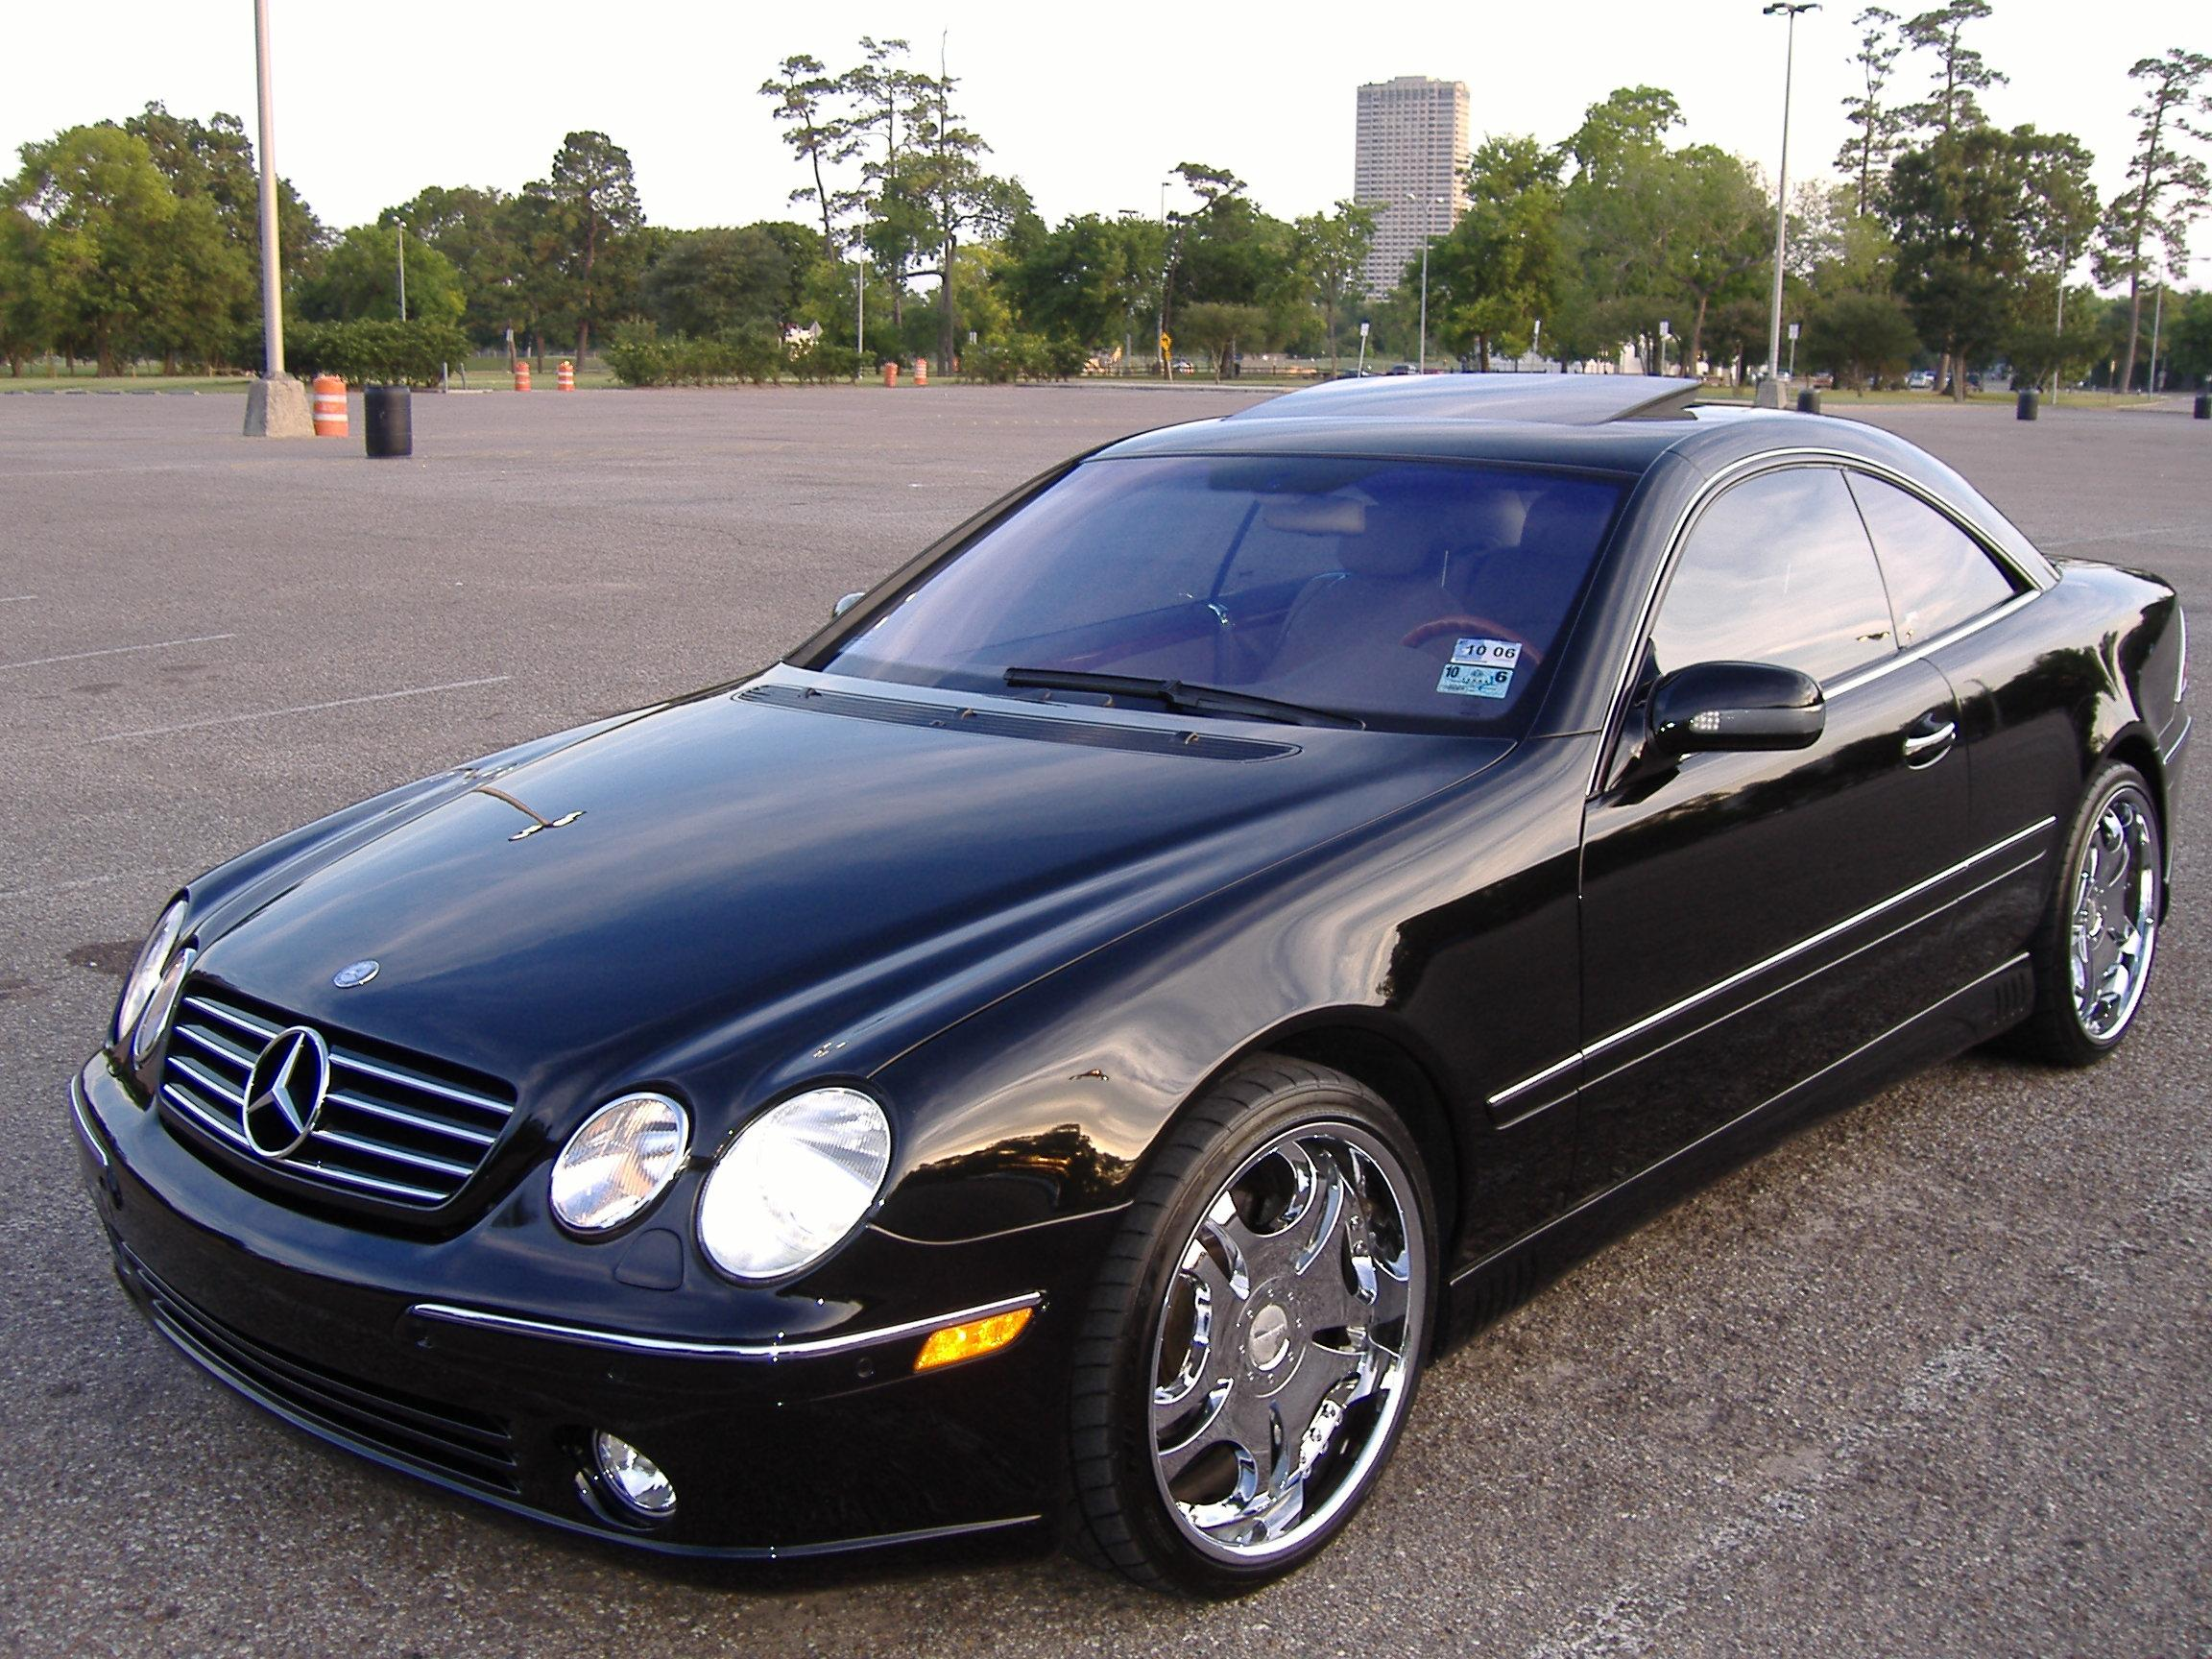 2001 mercedes benz cl class information and photos for 2001 mercedes benz e class sedan